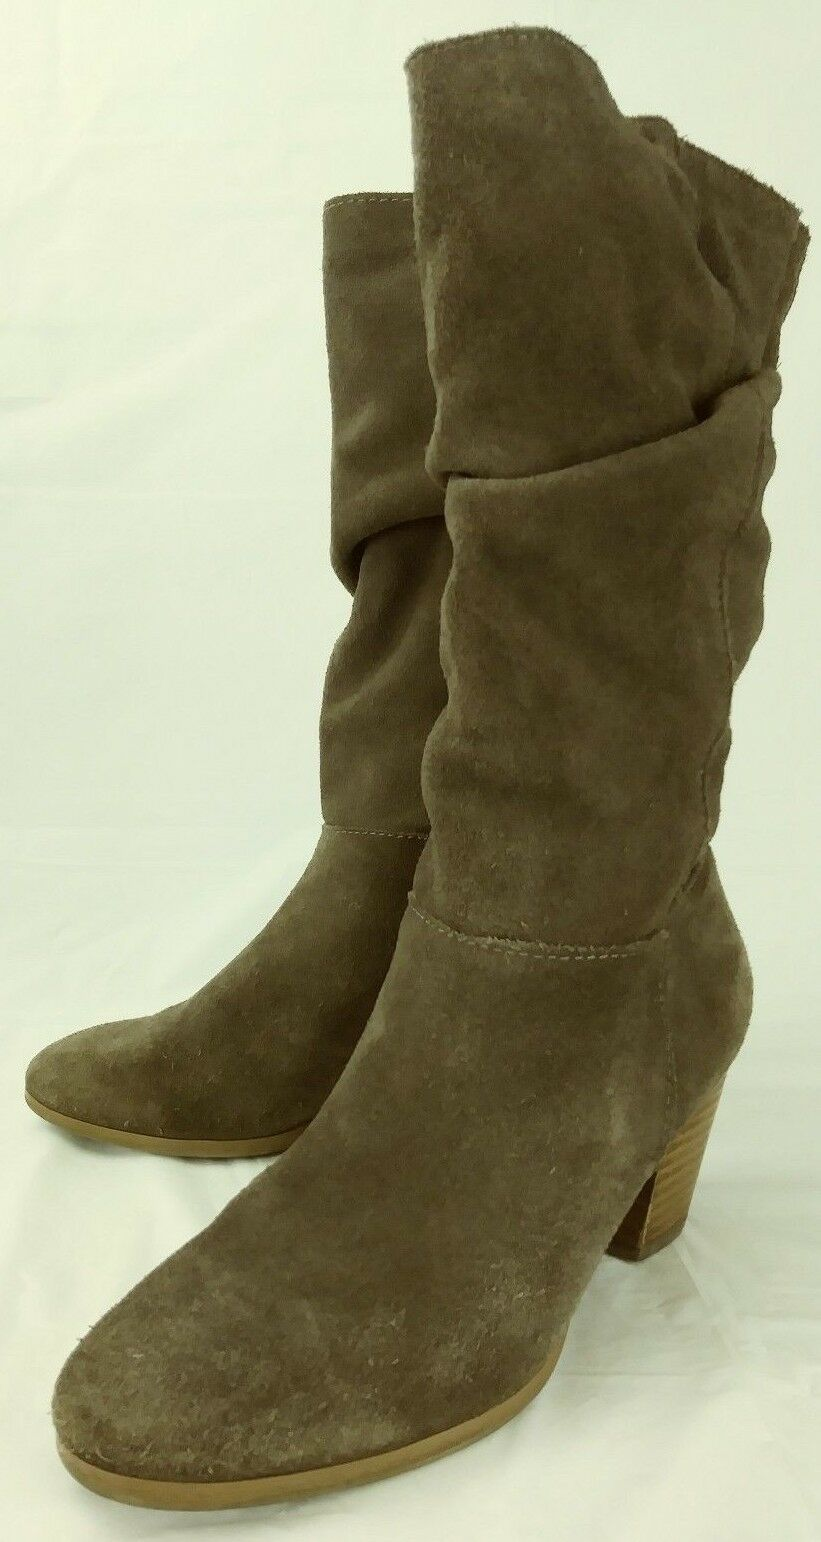 Crown Vintage Womens Boots Tall US 6.5 M Brown Suede Pull On Zip Slouchy  6042